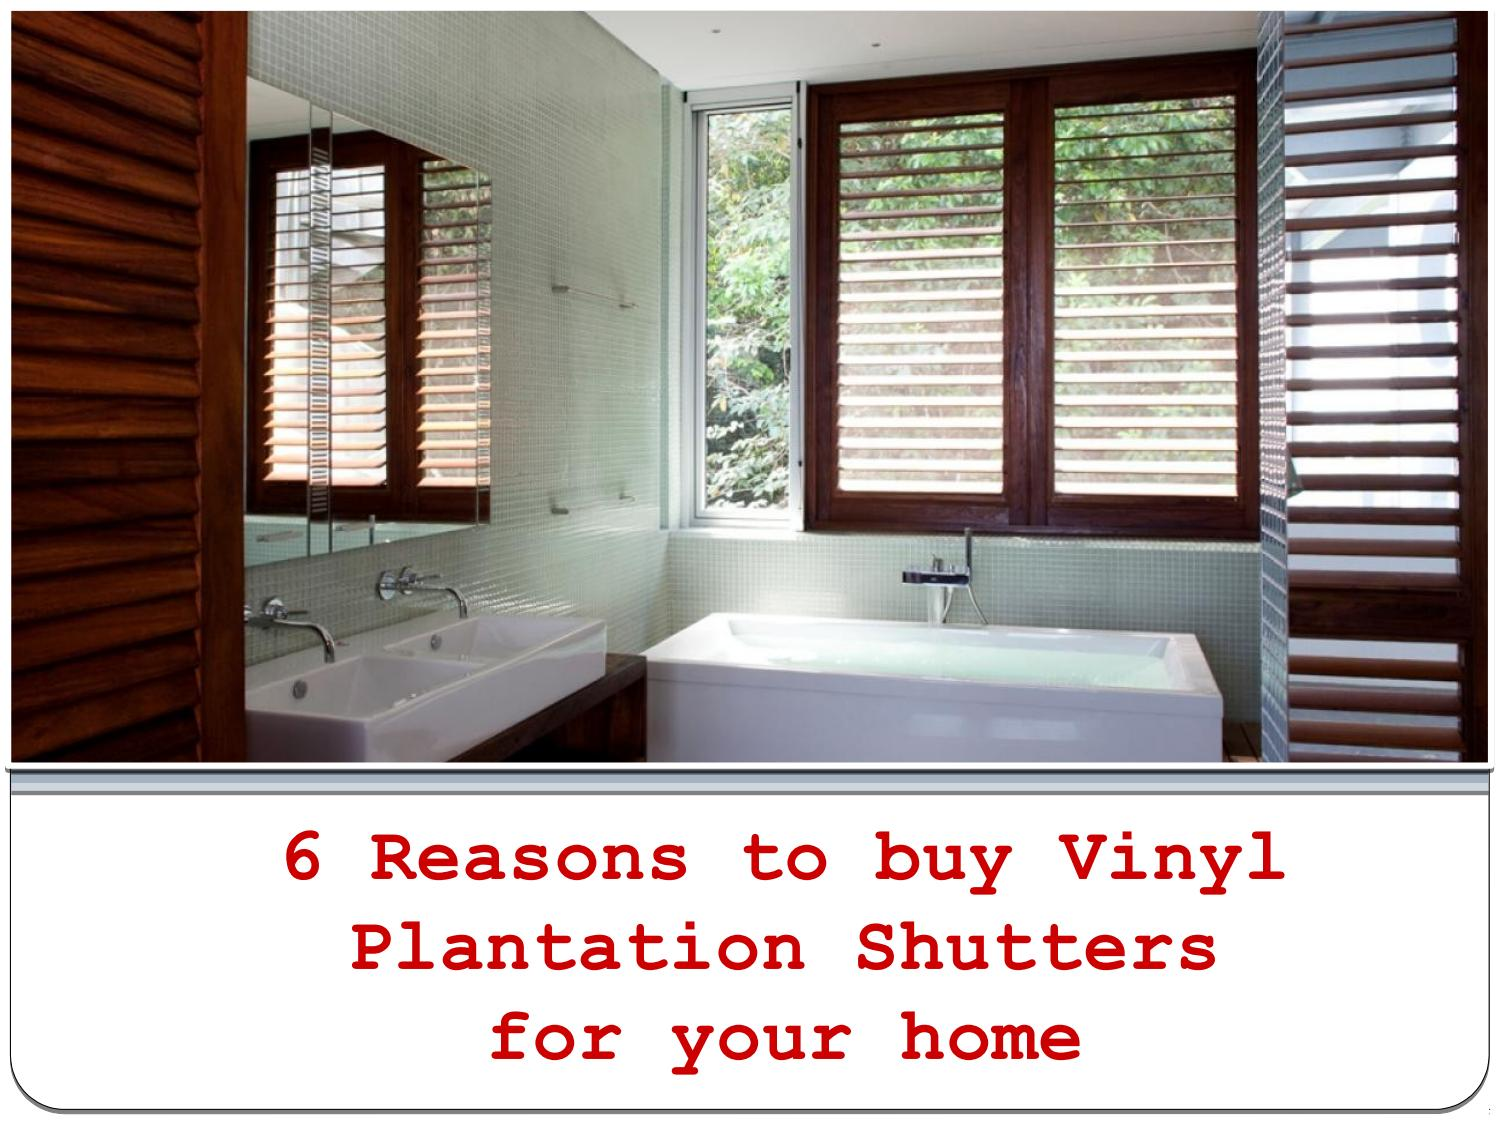 6 Reasons To Buy Vinyl Plantation Shutters For Your Home By